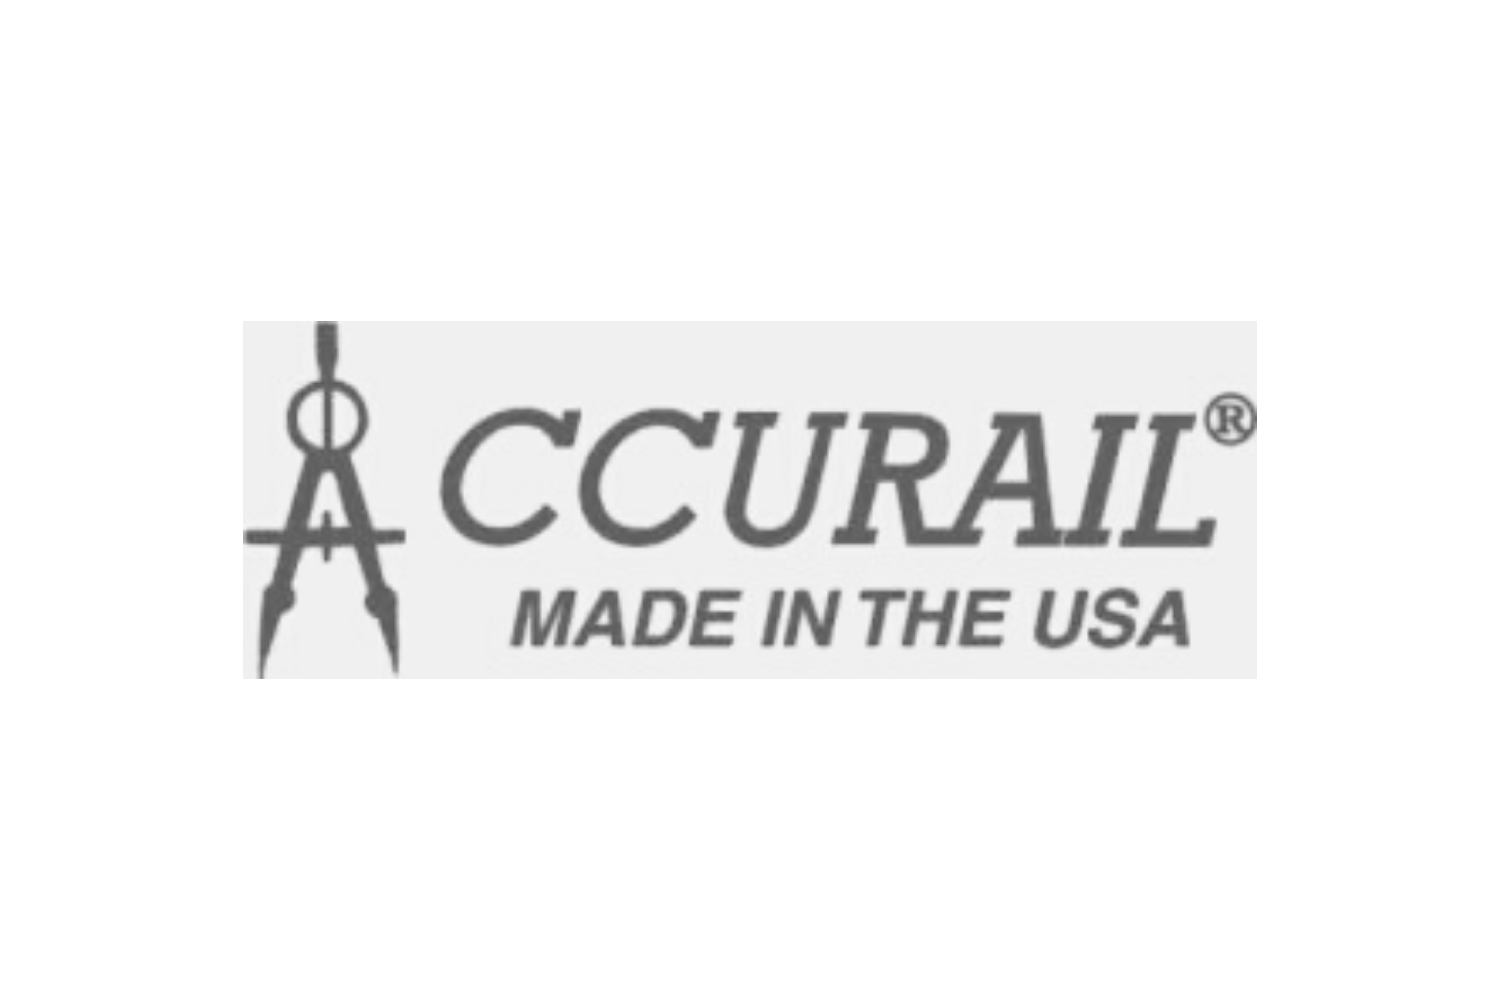 Accurail_Greyscale